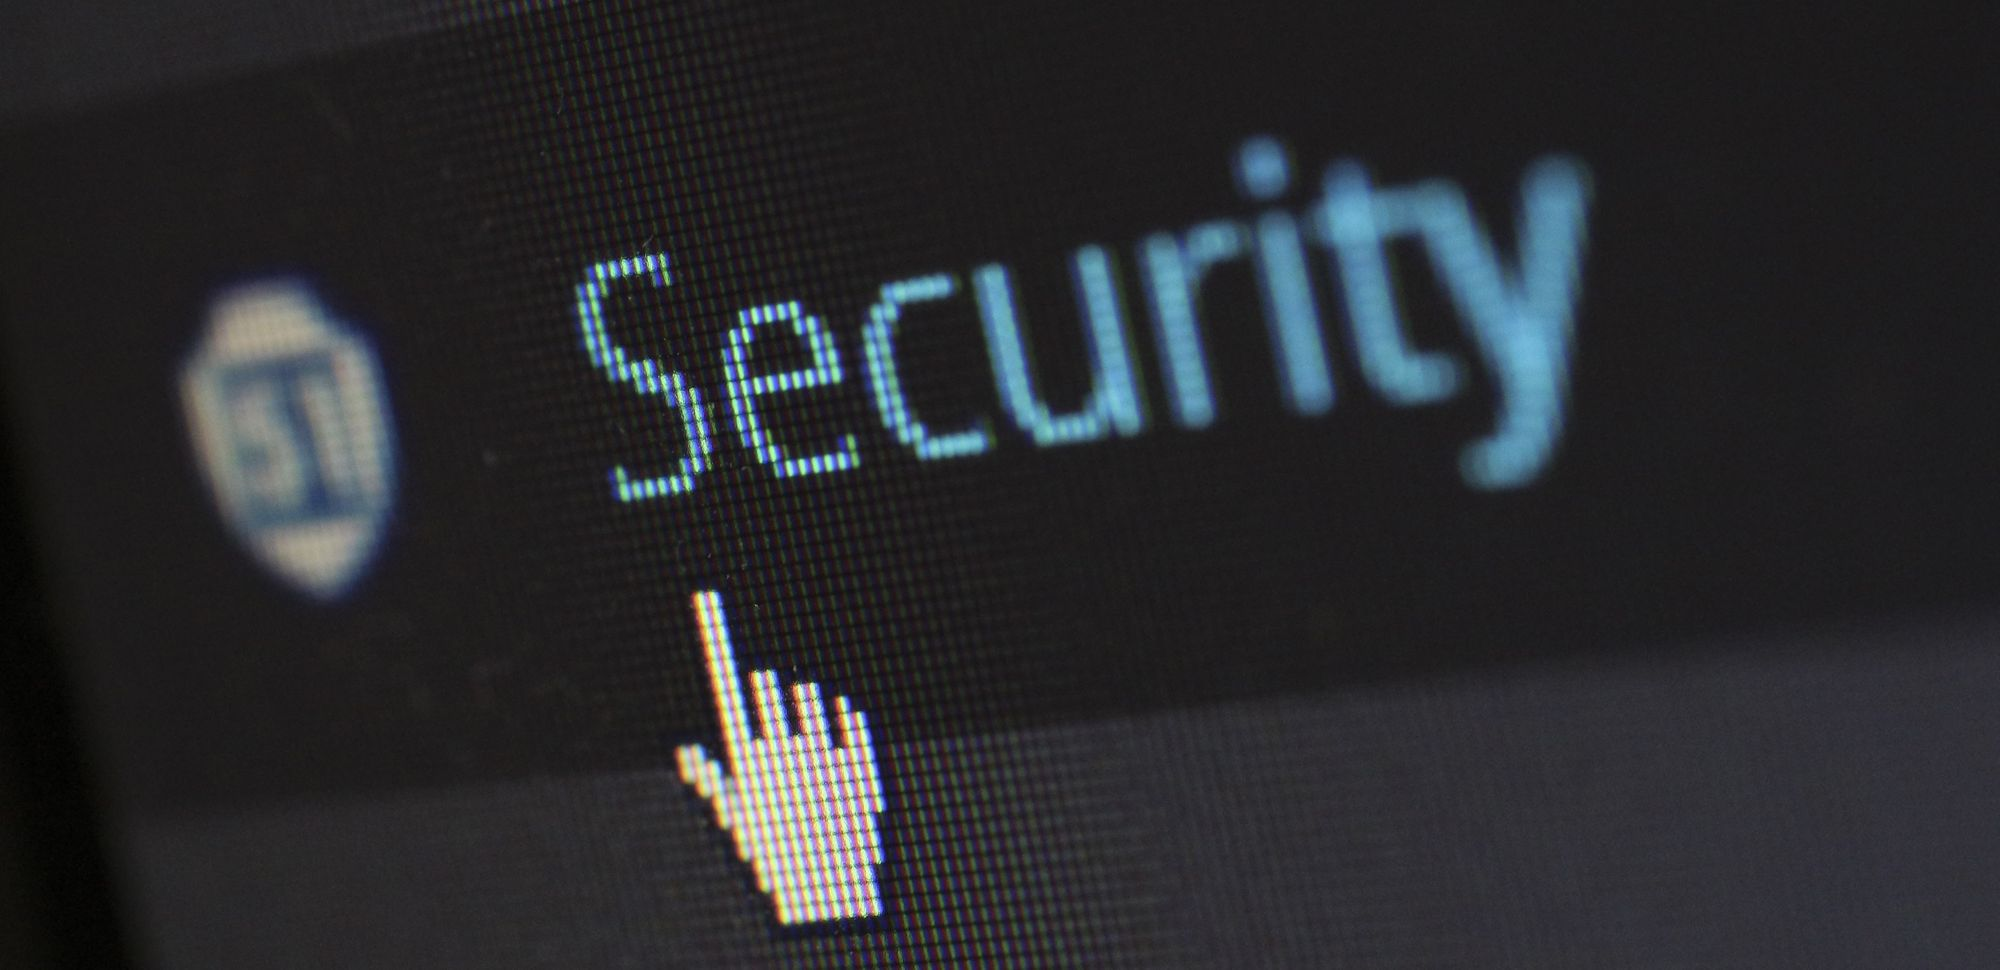 pointing to the word security on a computer screen